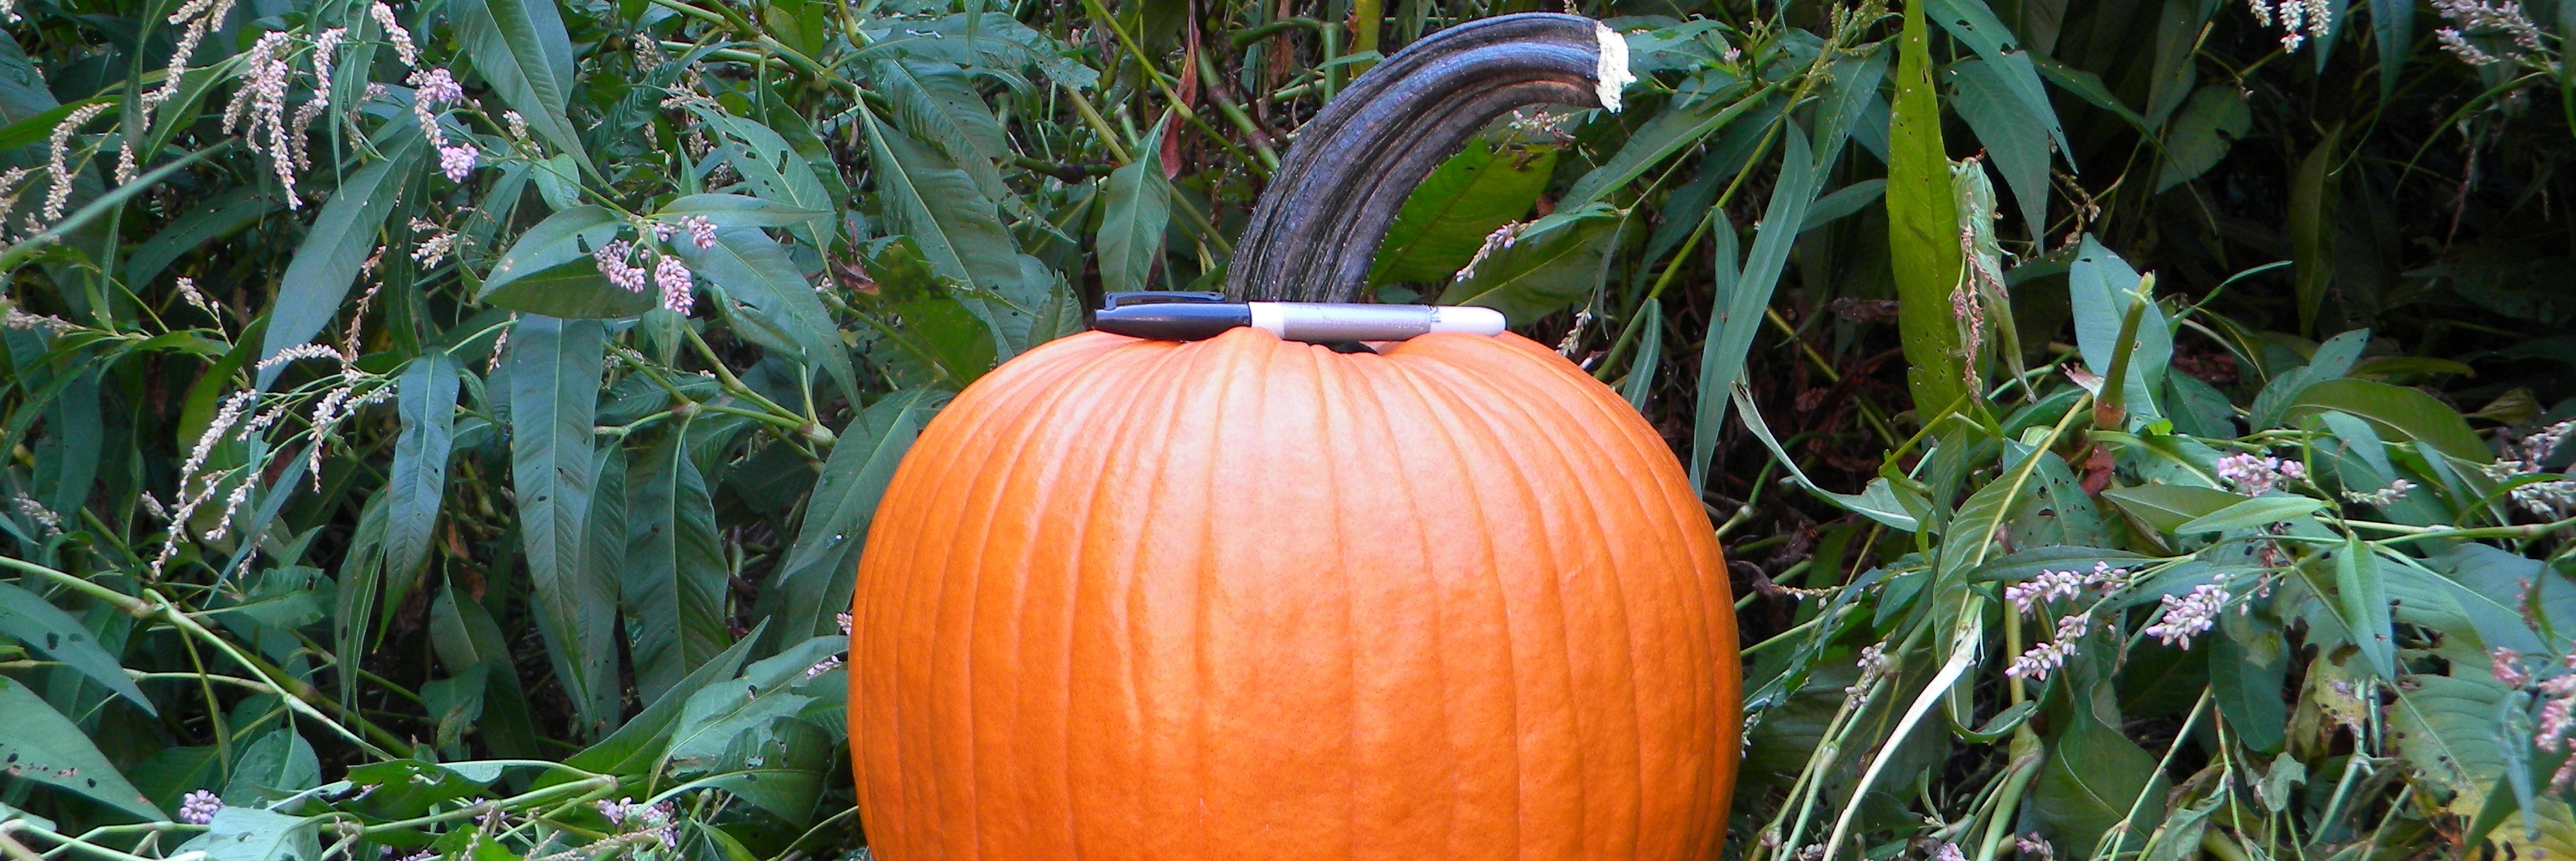 pumpkin-category.jpg